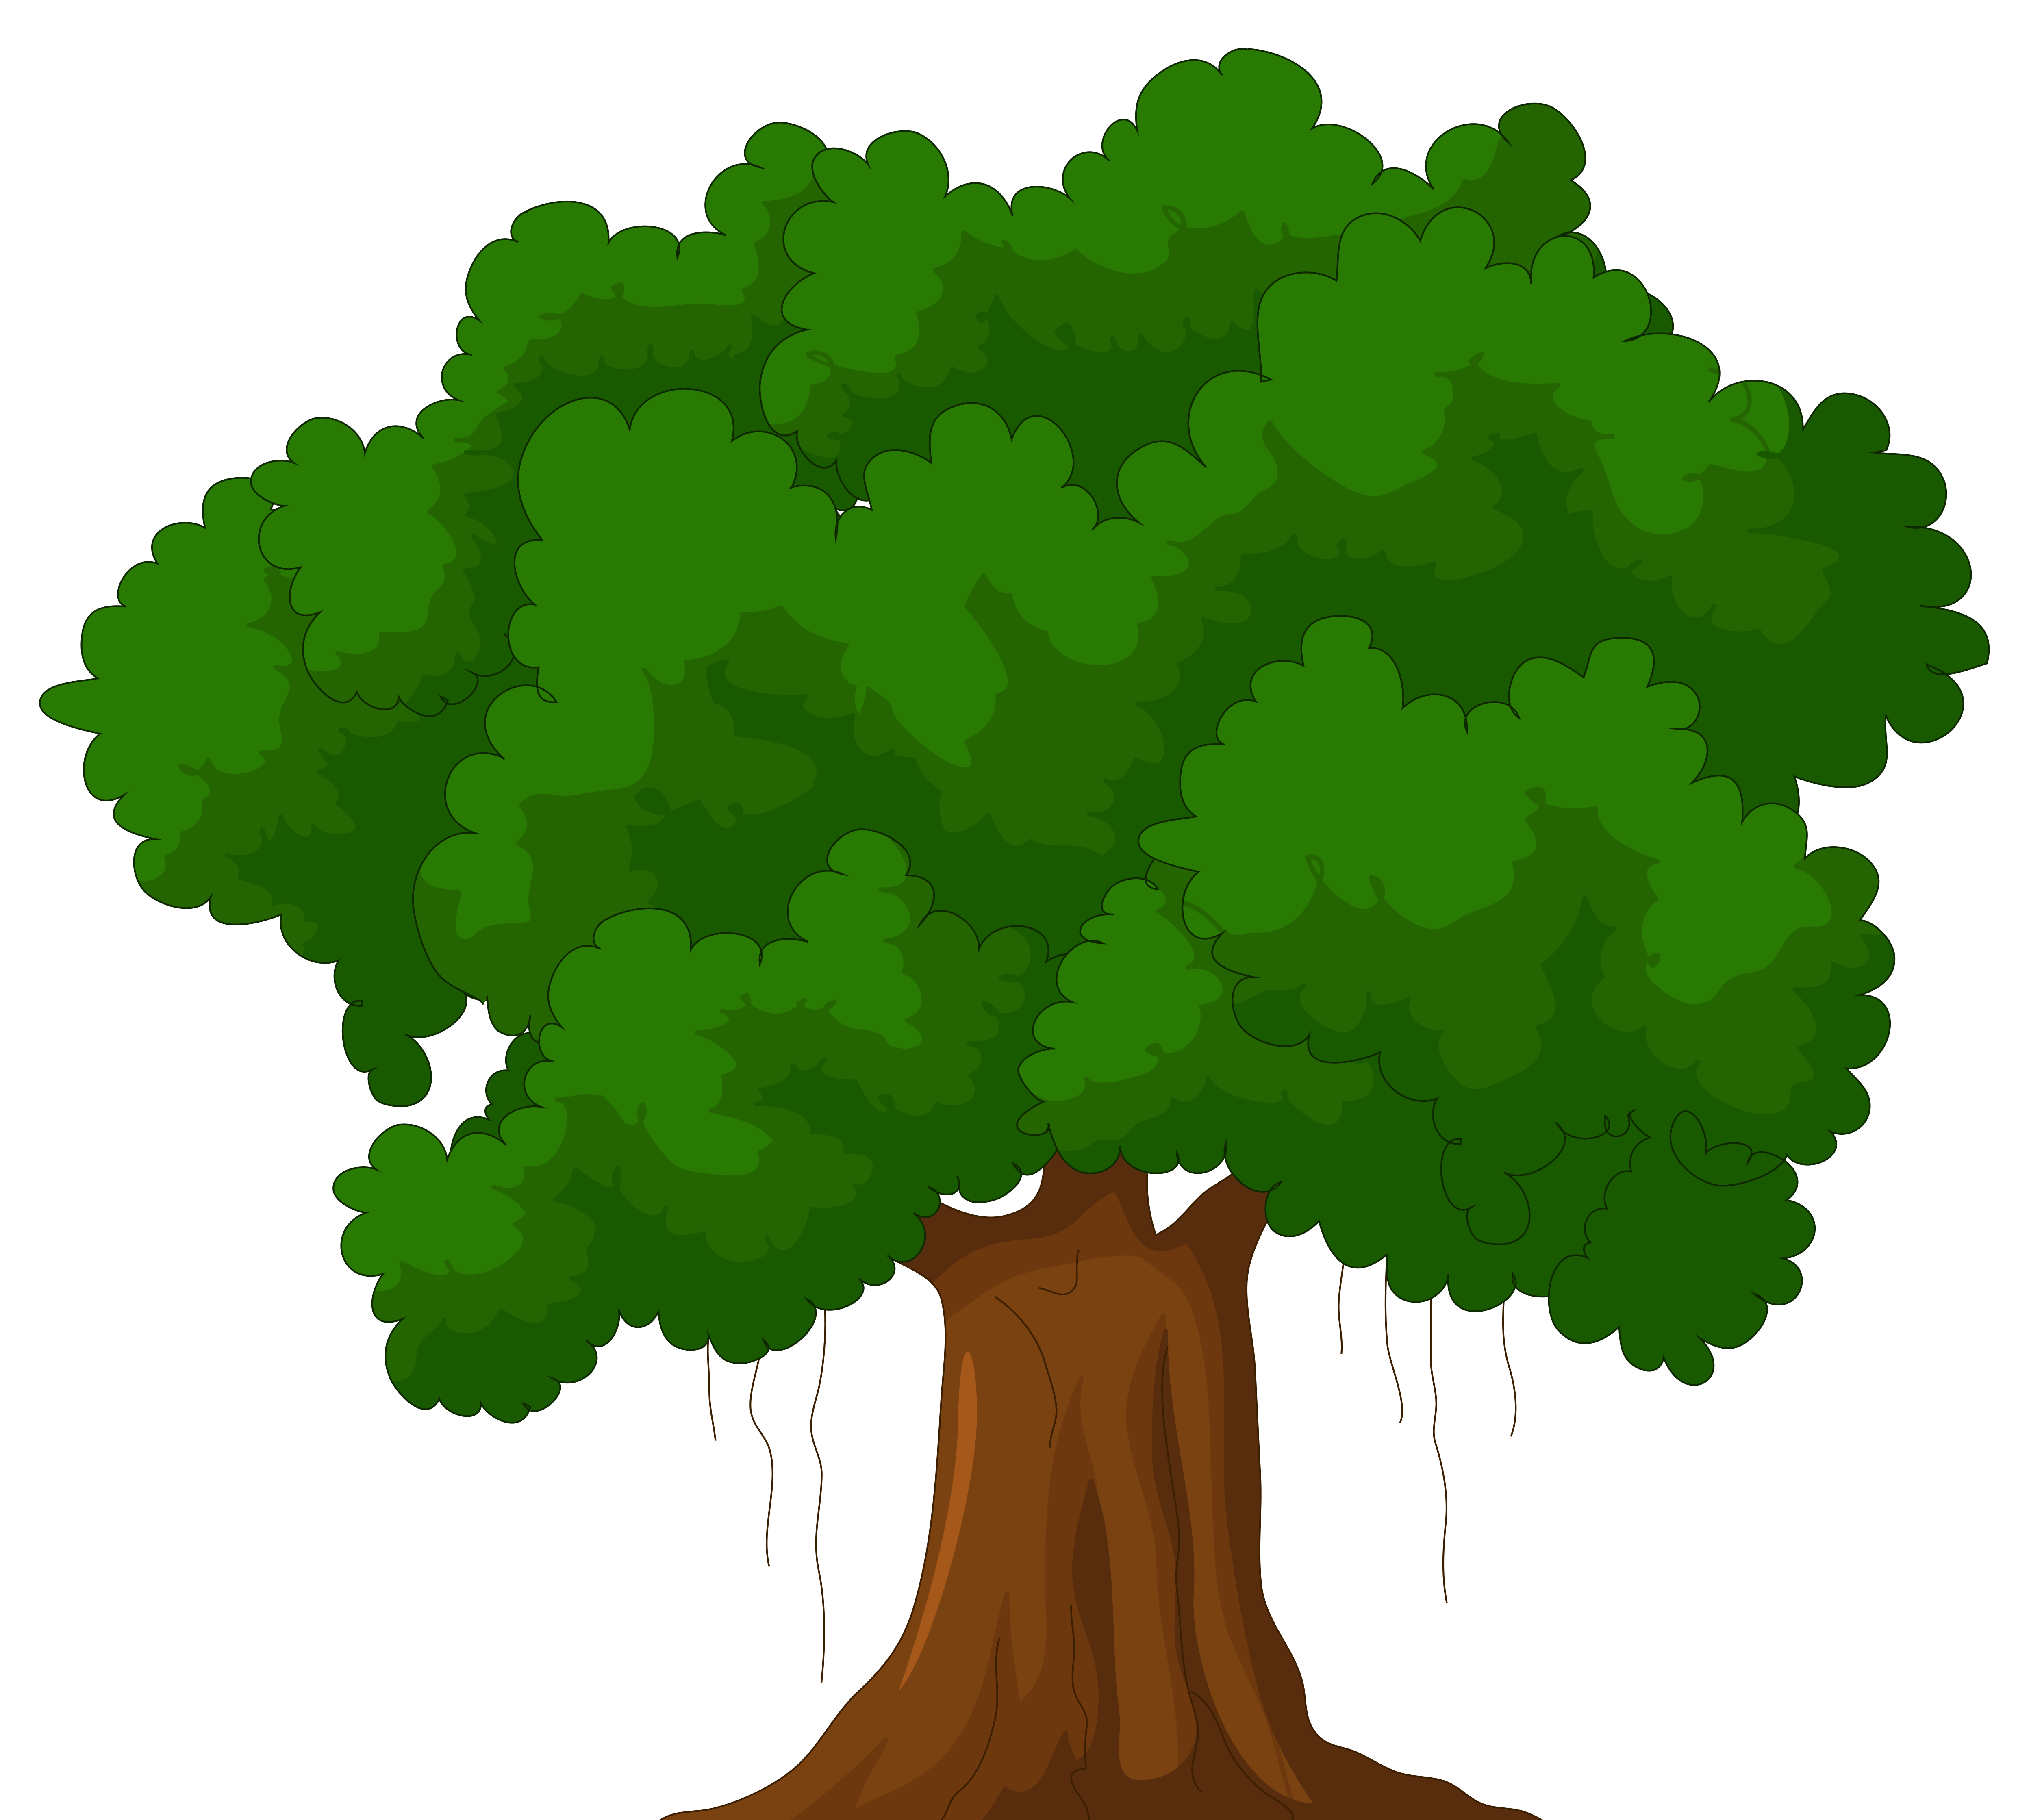 4992x4478 Authentic Cartoon Pictures Of A Tree Animated